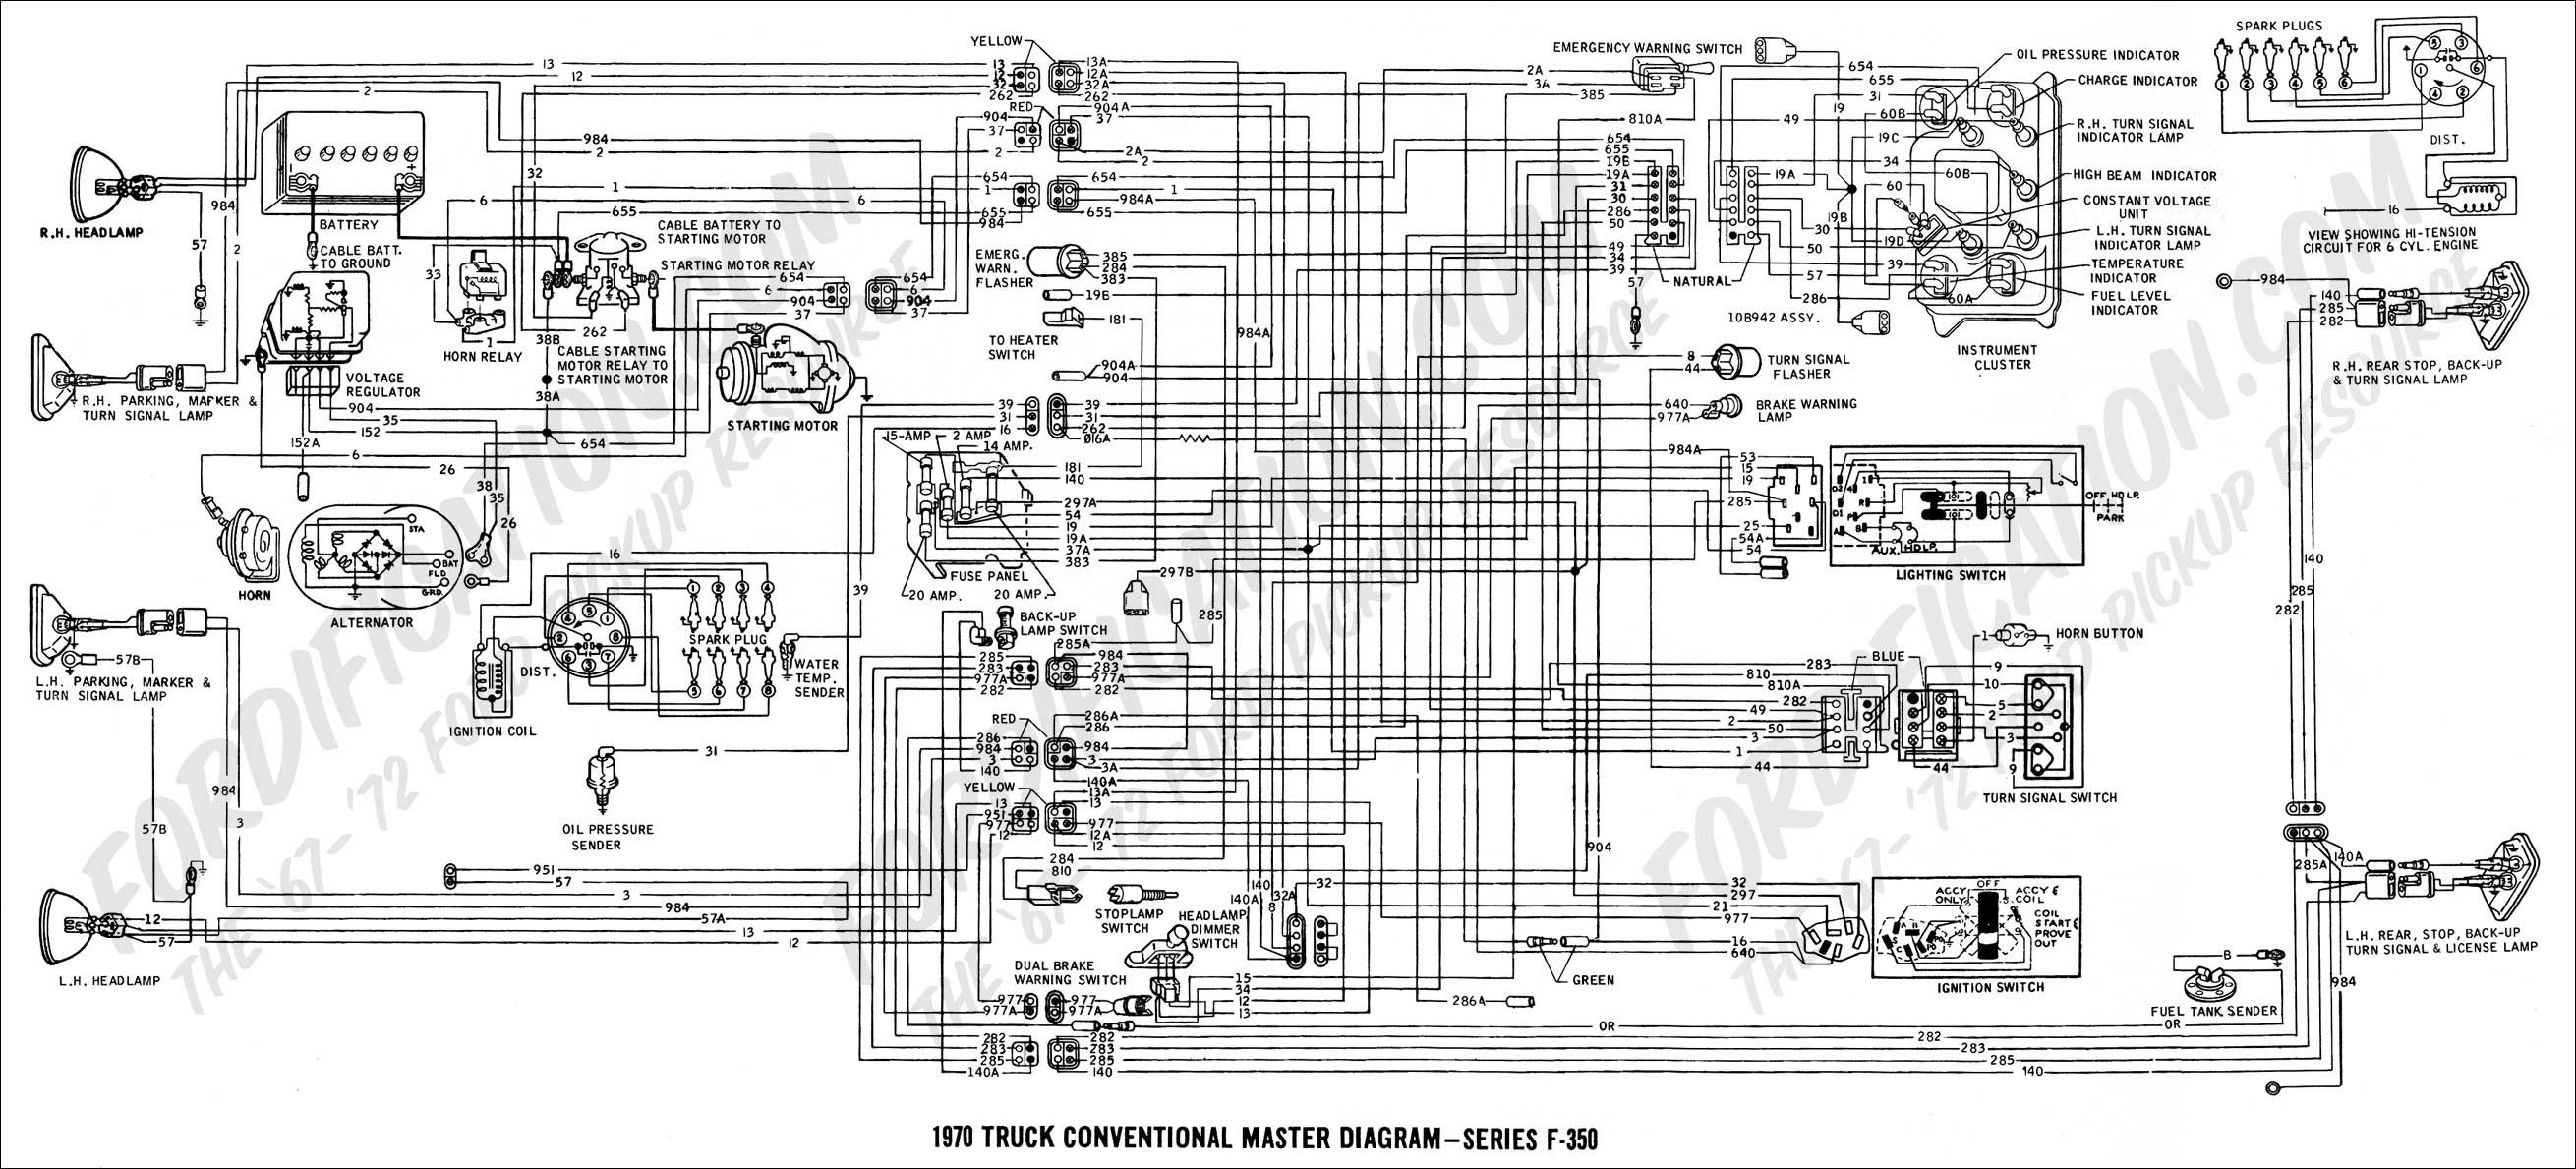 Ford Trailer Plug Wiring Diagram In 2020 Ford Ranger Ford F350 Powerstroke